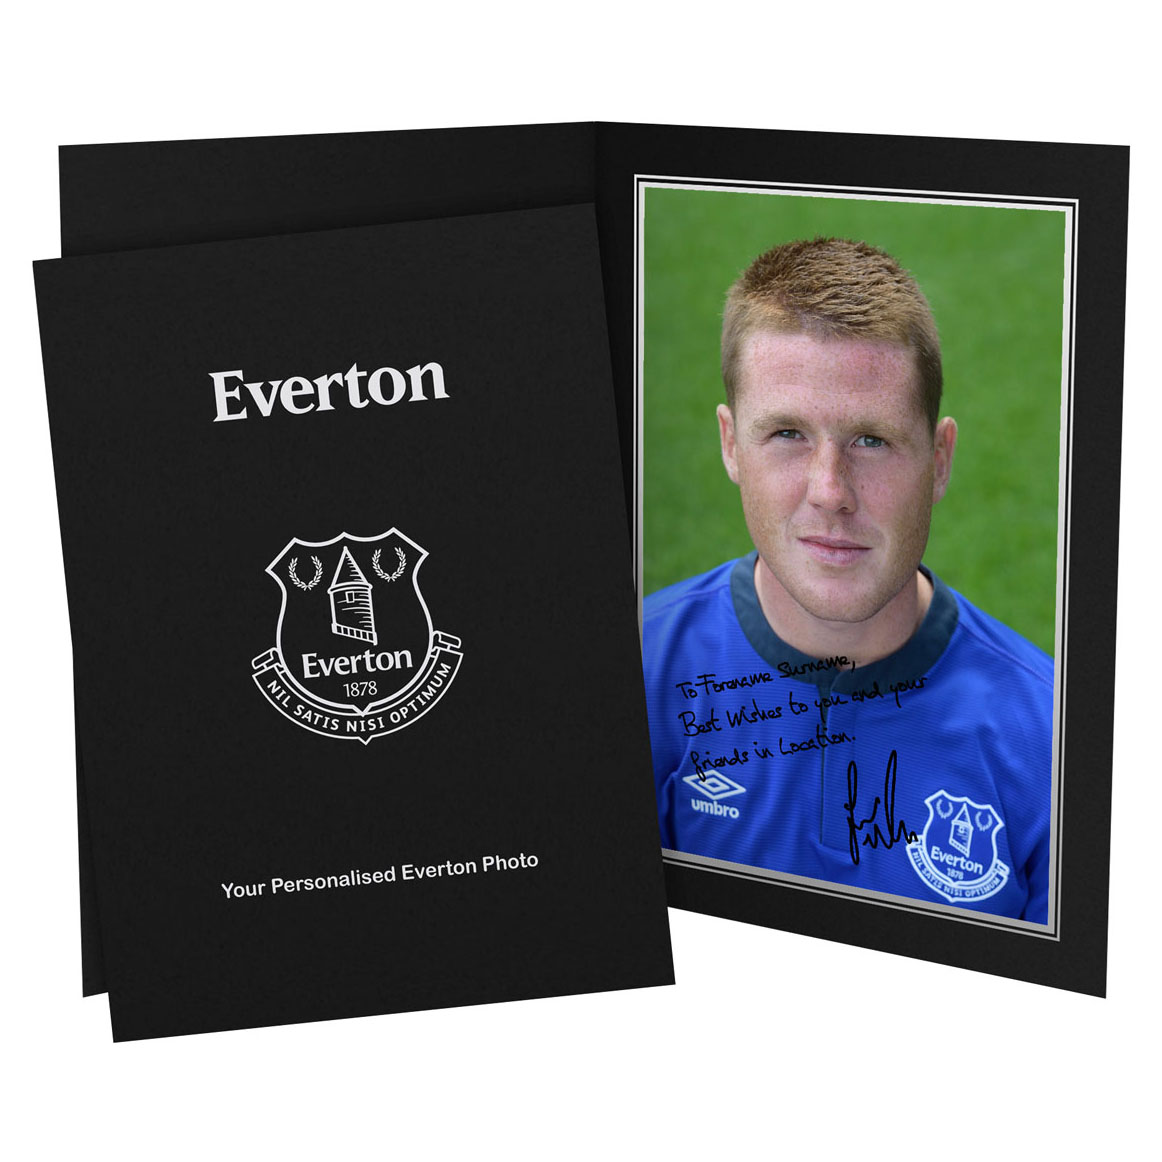 Everton Personalised Signature Photo in Presentation Folder - McCarthy